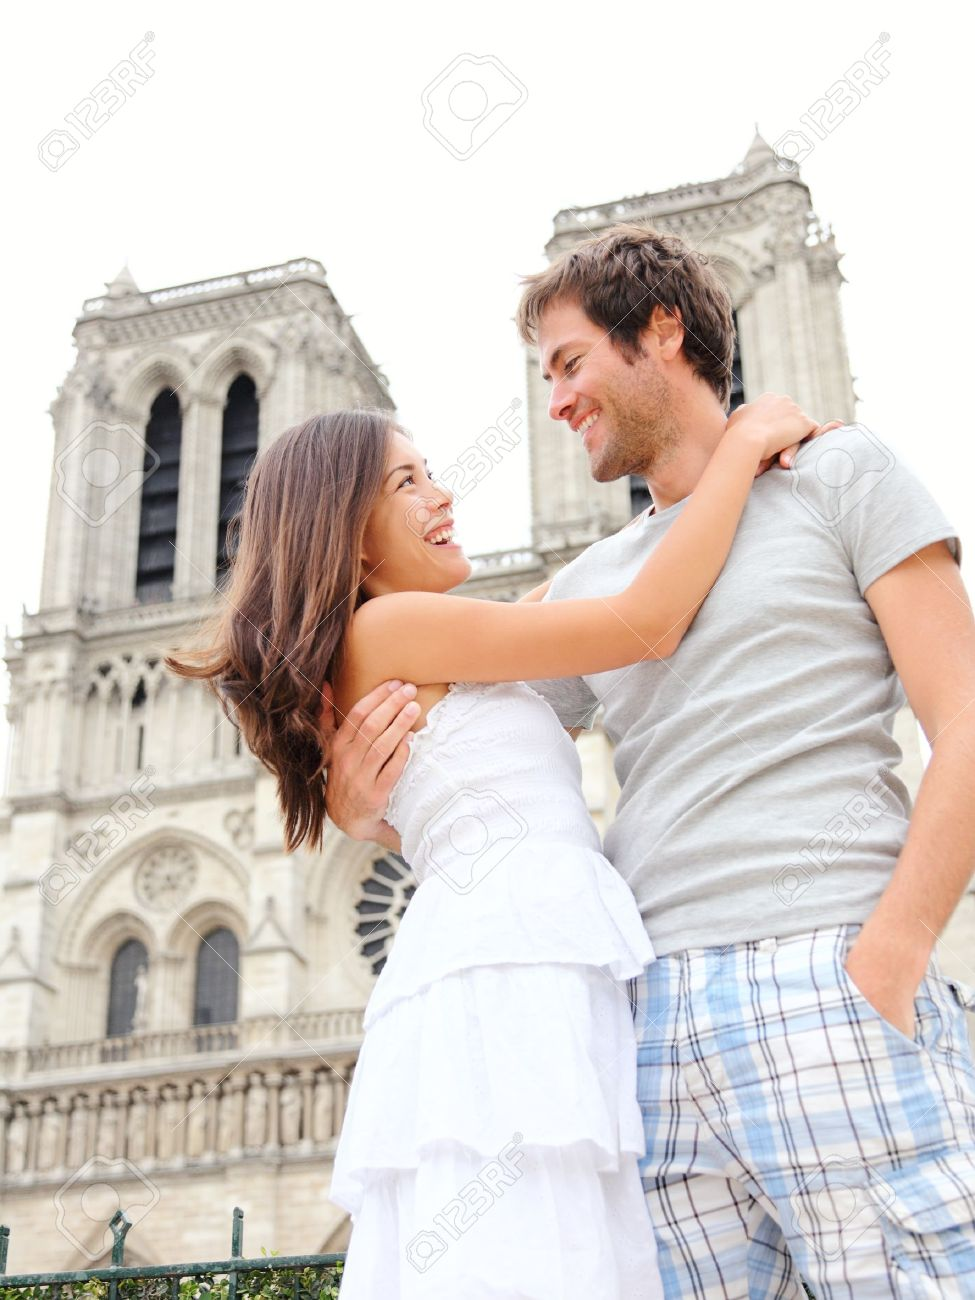 Notre Dame de Paris. Happy young couple in front of Notre Dame Cathedral in Paris, France. Asian woman and Caucasian man. Stock Photo - 11888213